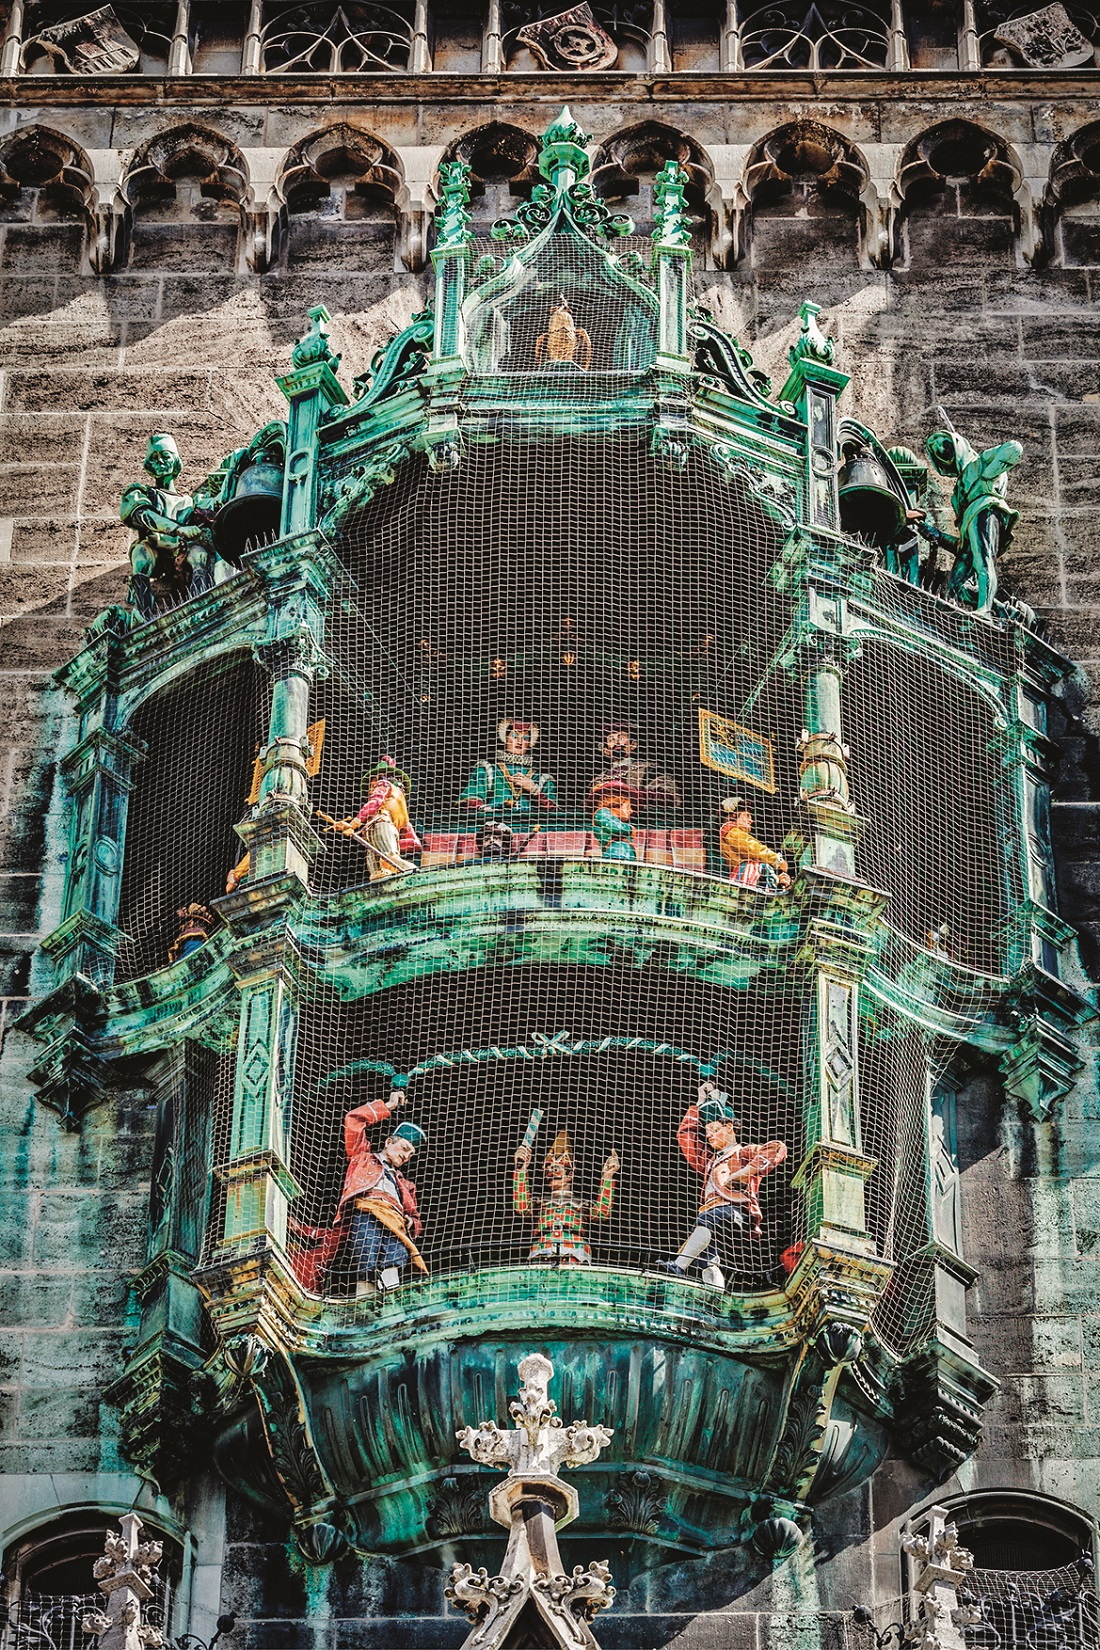 Animated figurines of Rathaus-Glockenspiel -  tourist attraction on New Town hall of Munich,  Germany,Image: 538224938, License: Royalty-free, Restrictions: , Model Release: no, Credit line: Dmitry Rukhlenko / Panthermedia / Profimedia